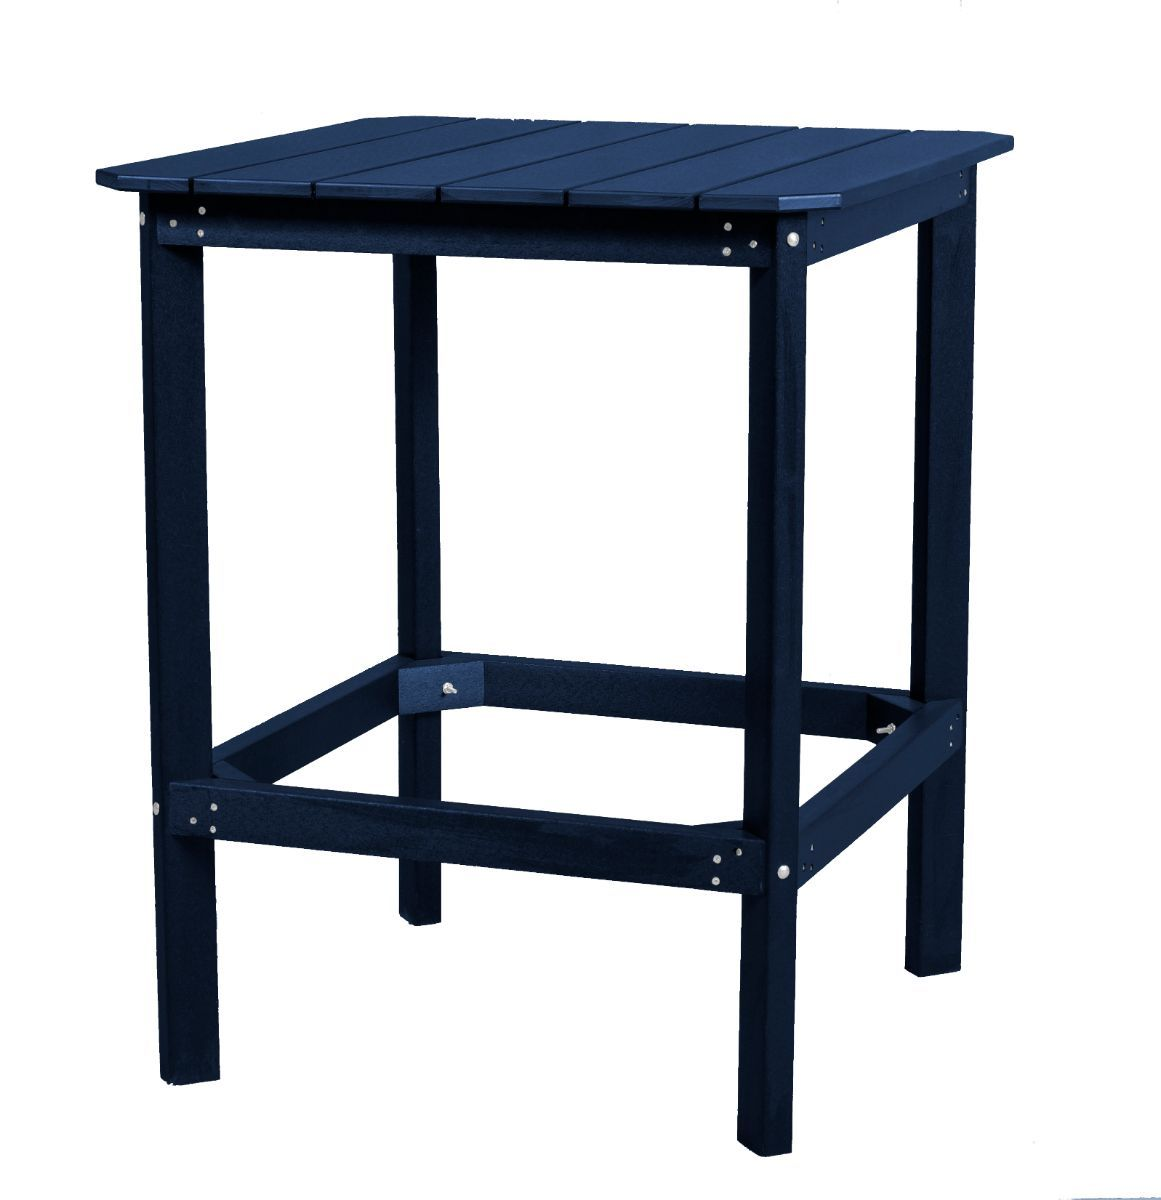 Patriot Blue Panama High Outdoor Dining Table